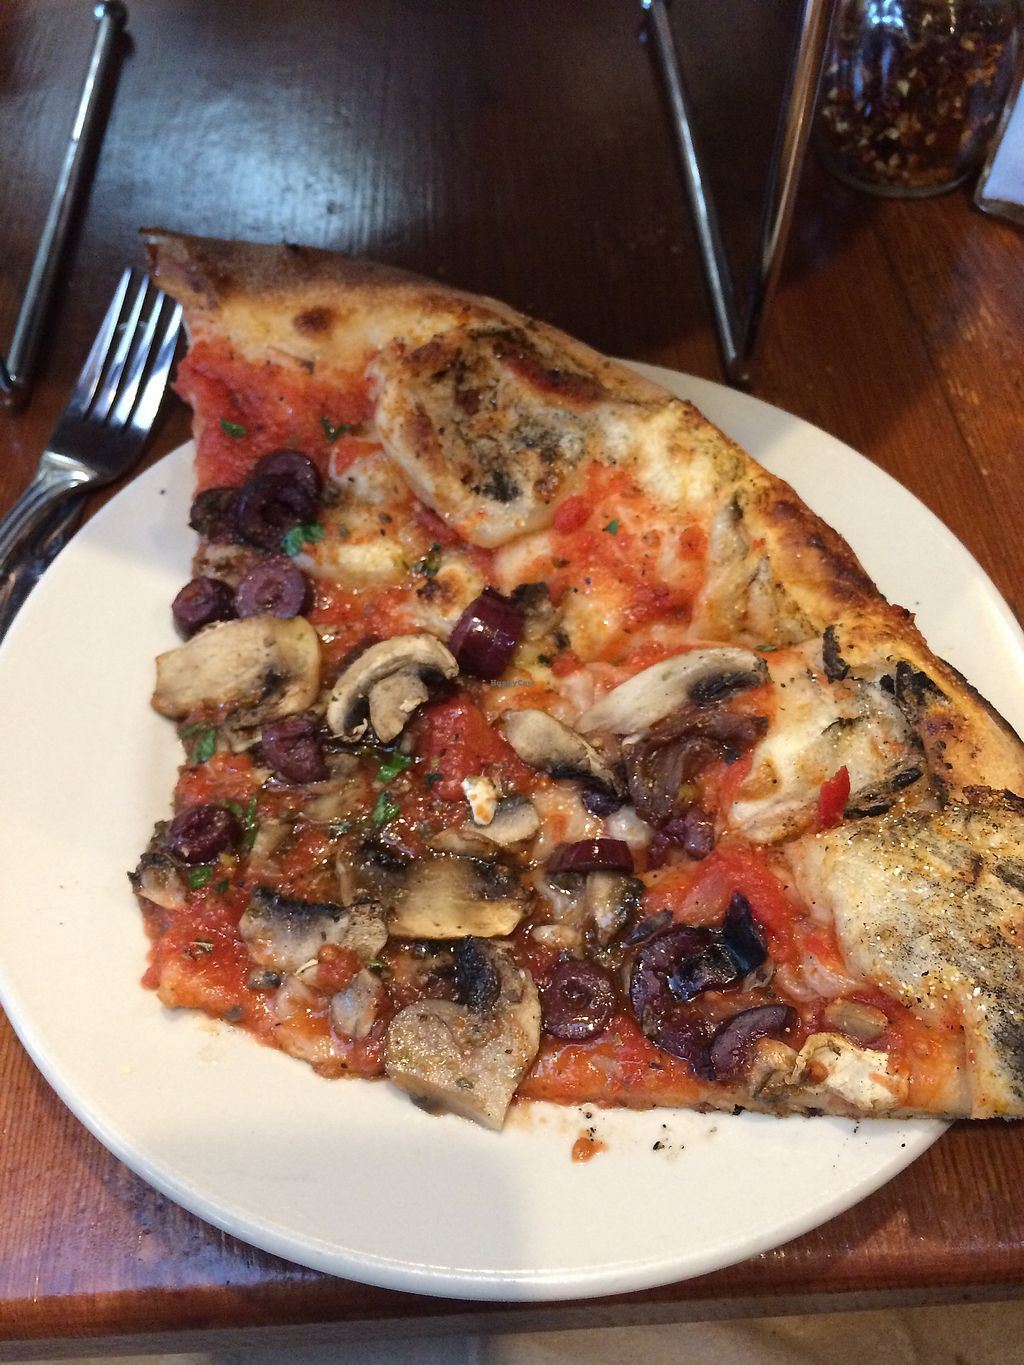 """Photo of Flatbread Company  by <a href=""""/members/profile/veganmamaof4"""">veganmamaof4</a> <br/>vegan flatbread with mushrooms and kalamata olives <br/> August 2, 2017  - <a href='/contact/abuse/image/3962/288106'>Report</a>"""